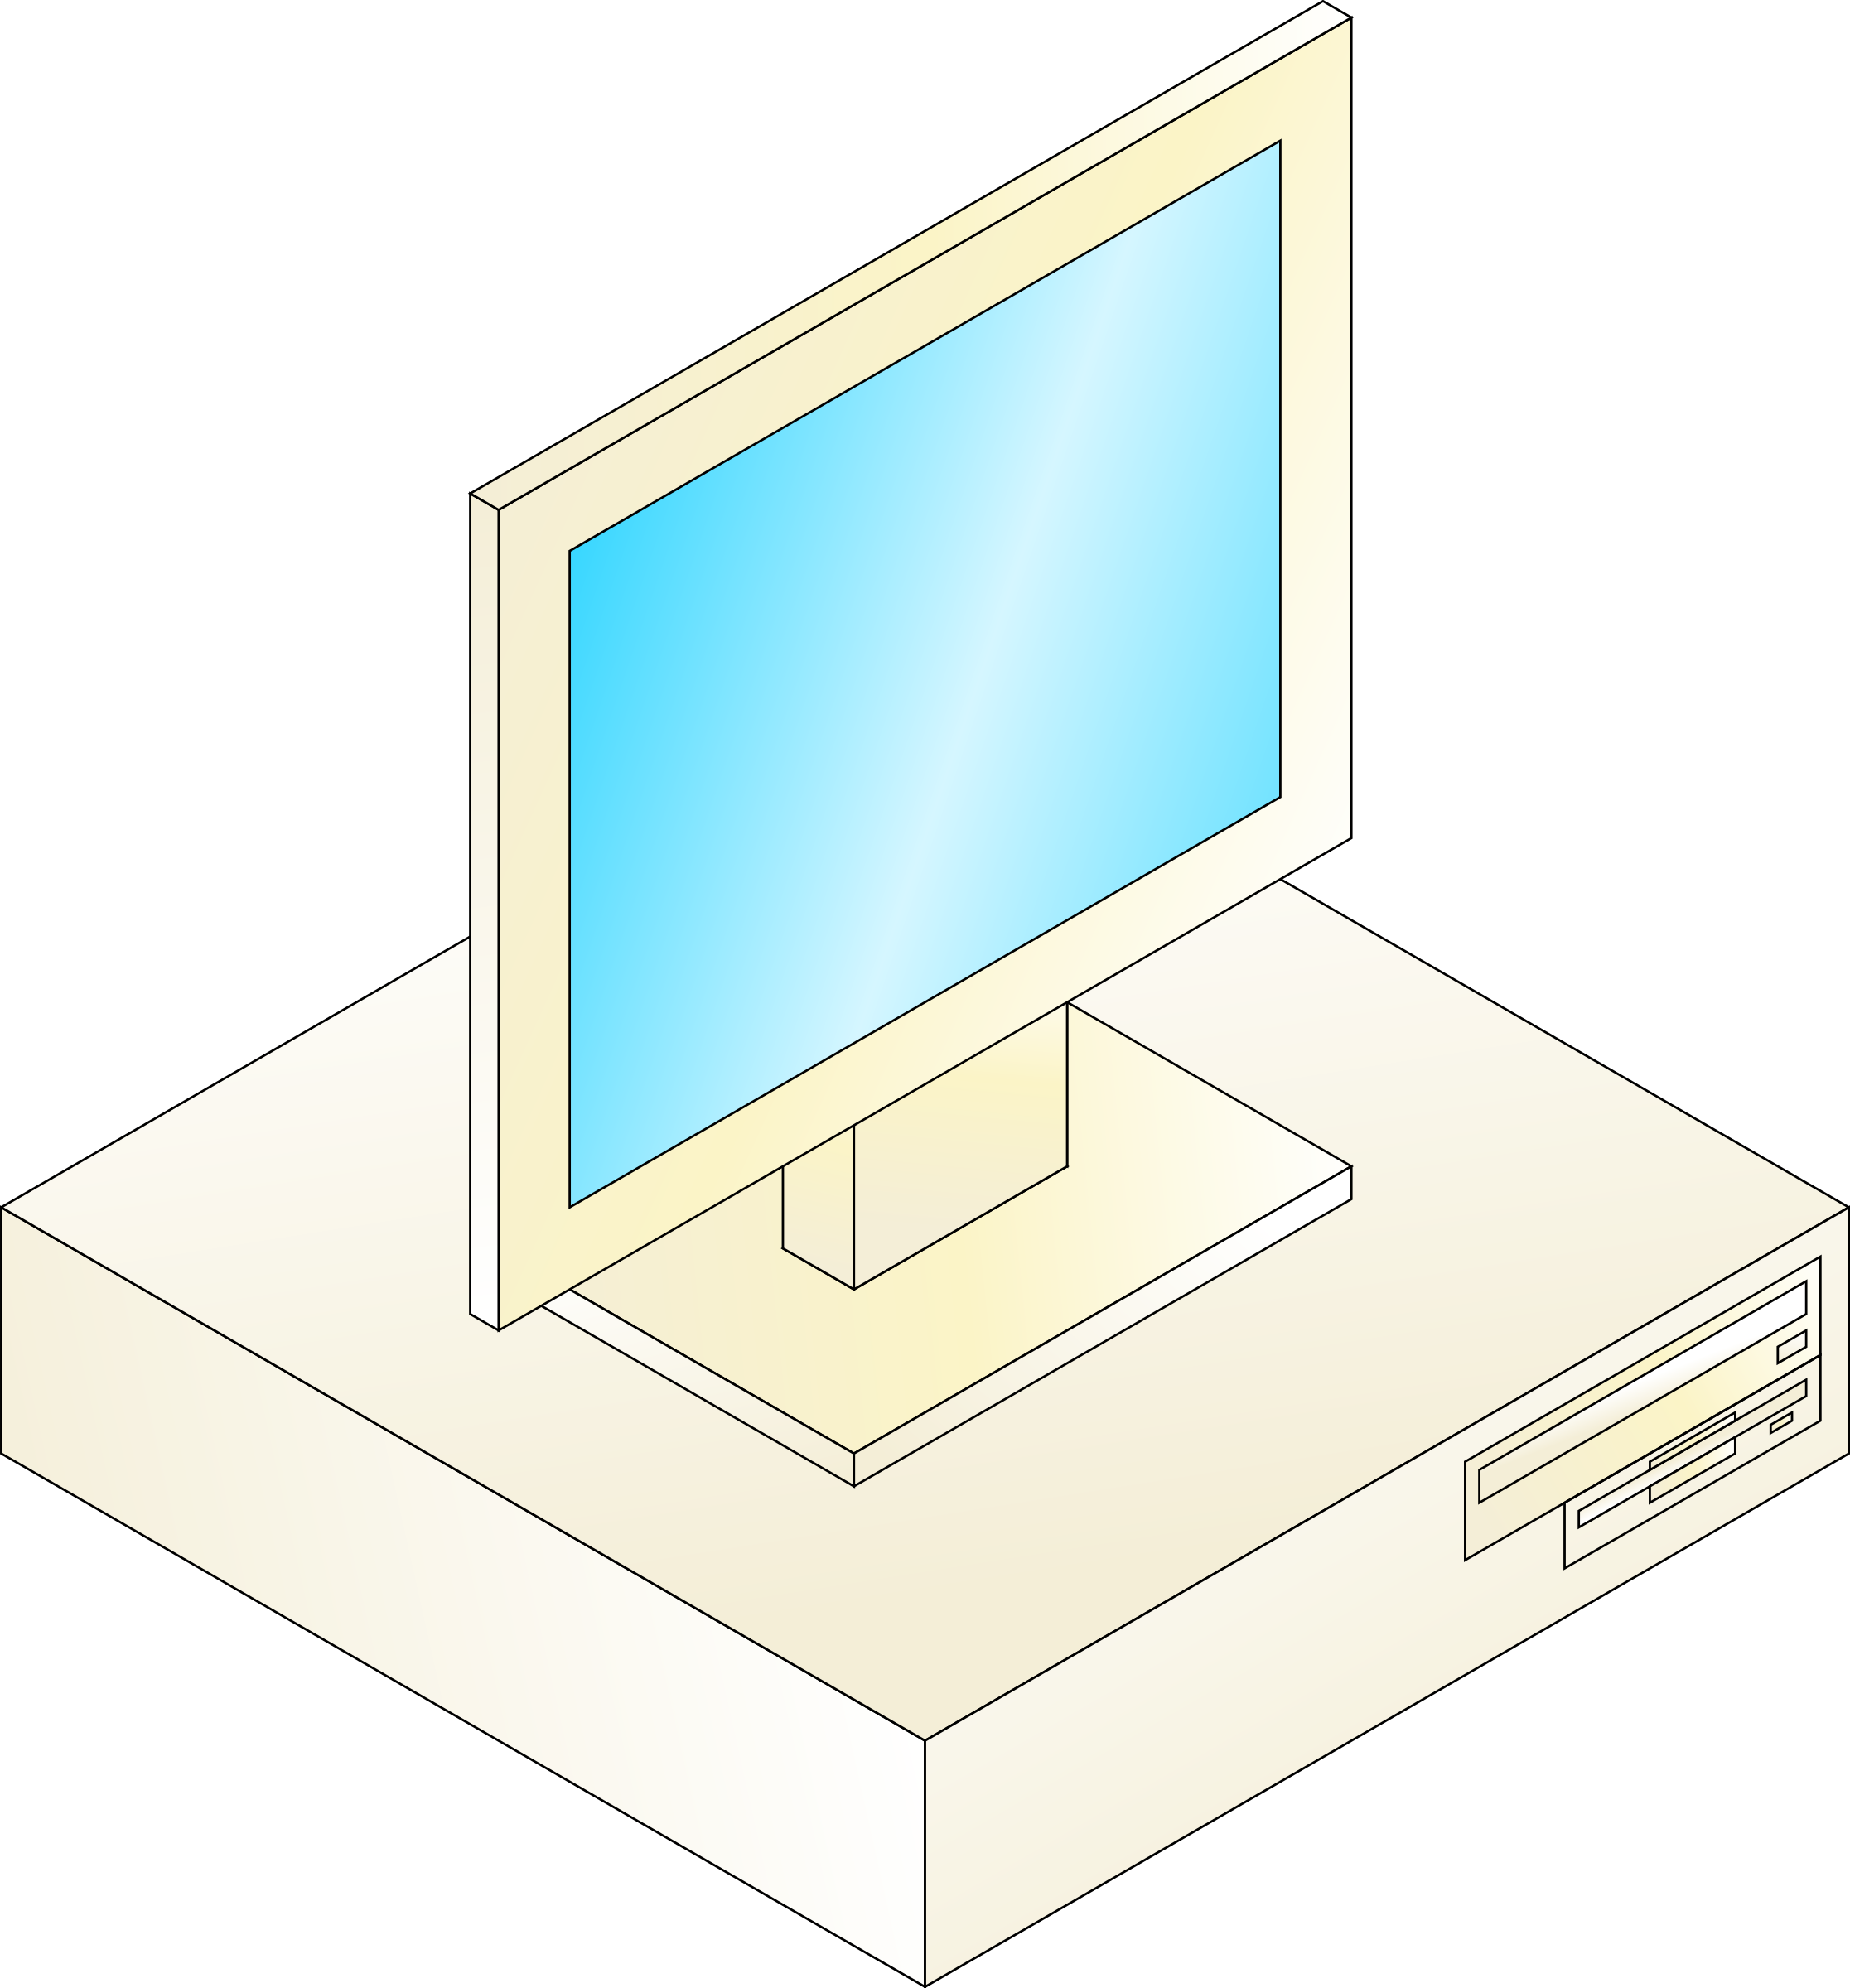 Desktop computer with monitor on top by jhnri4